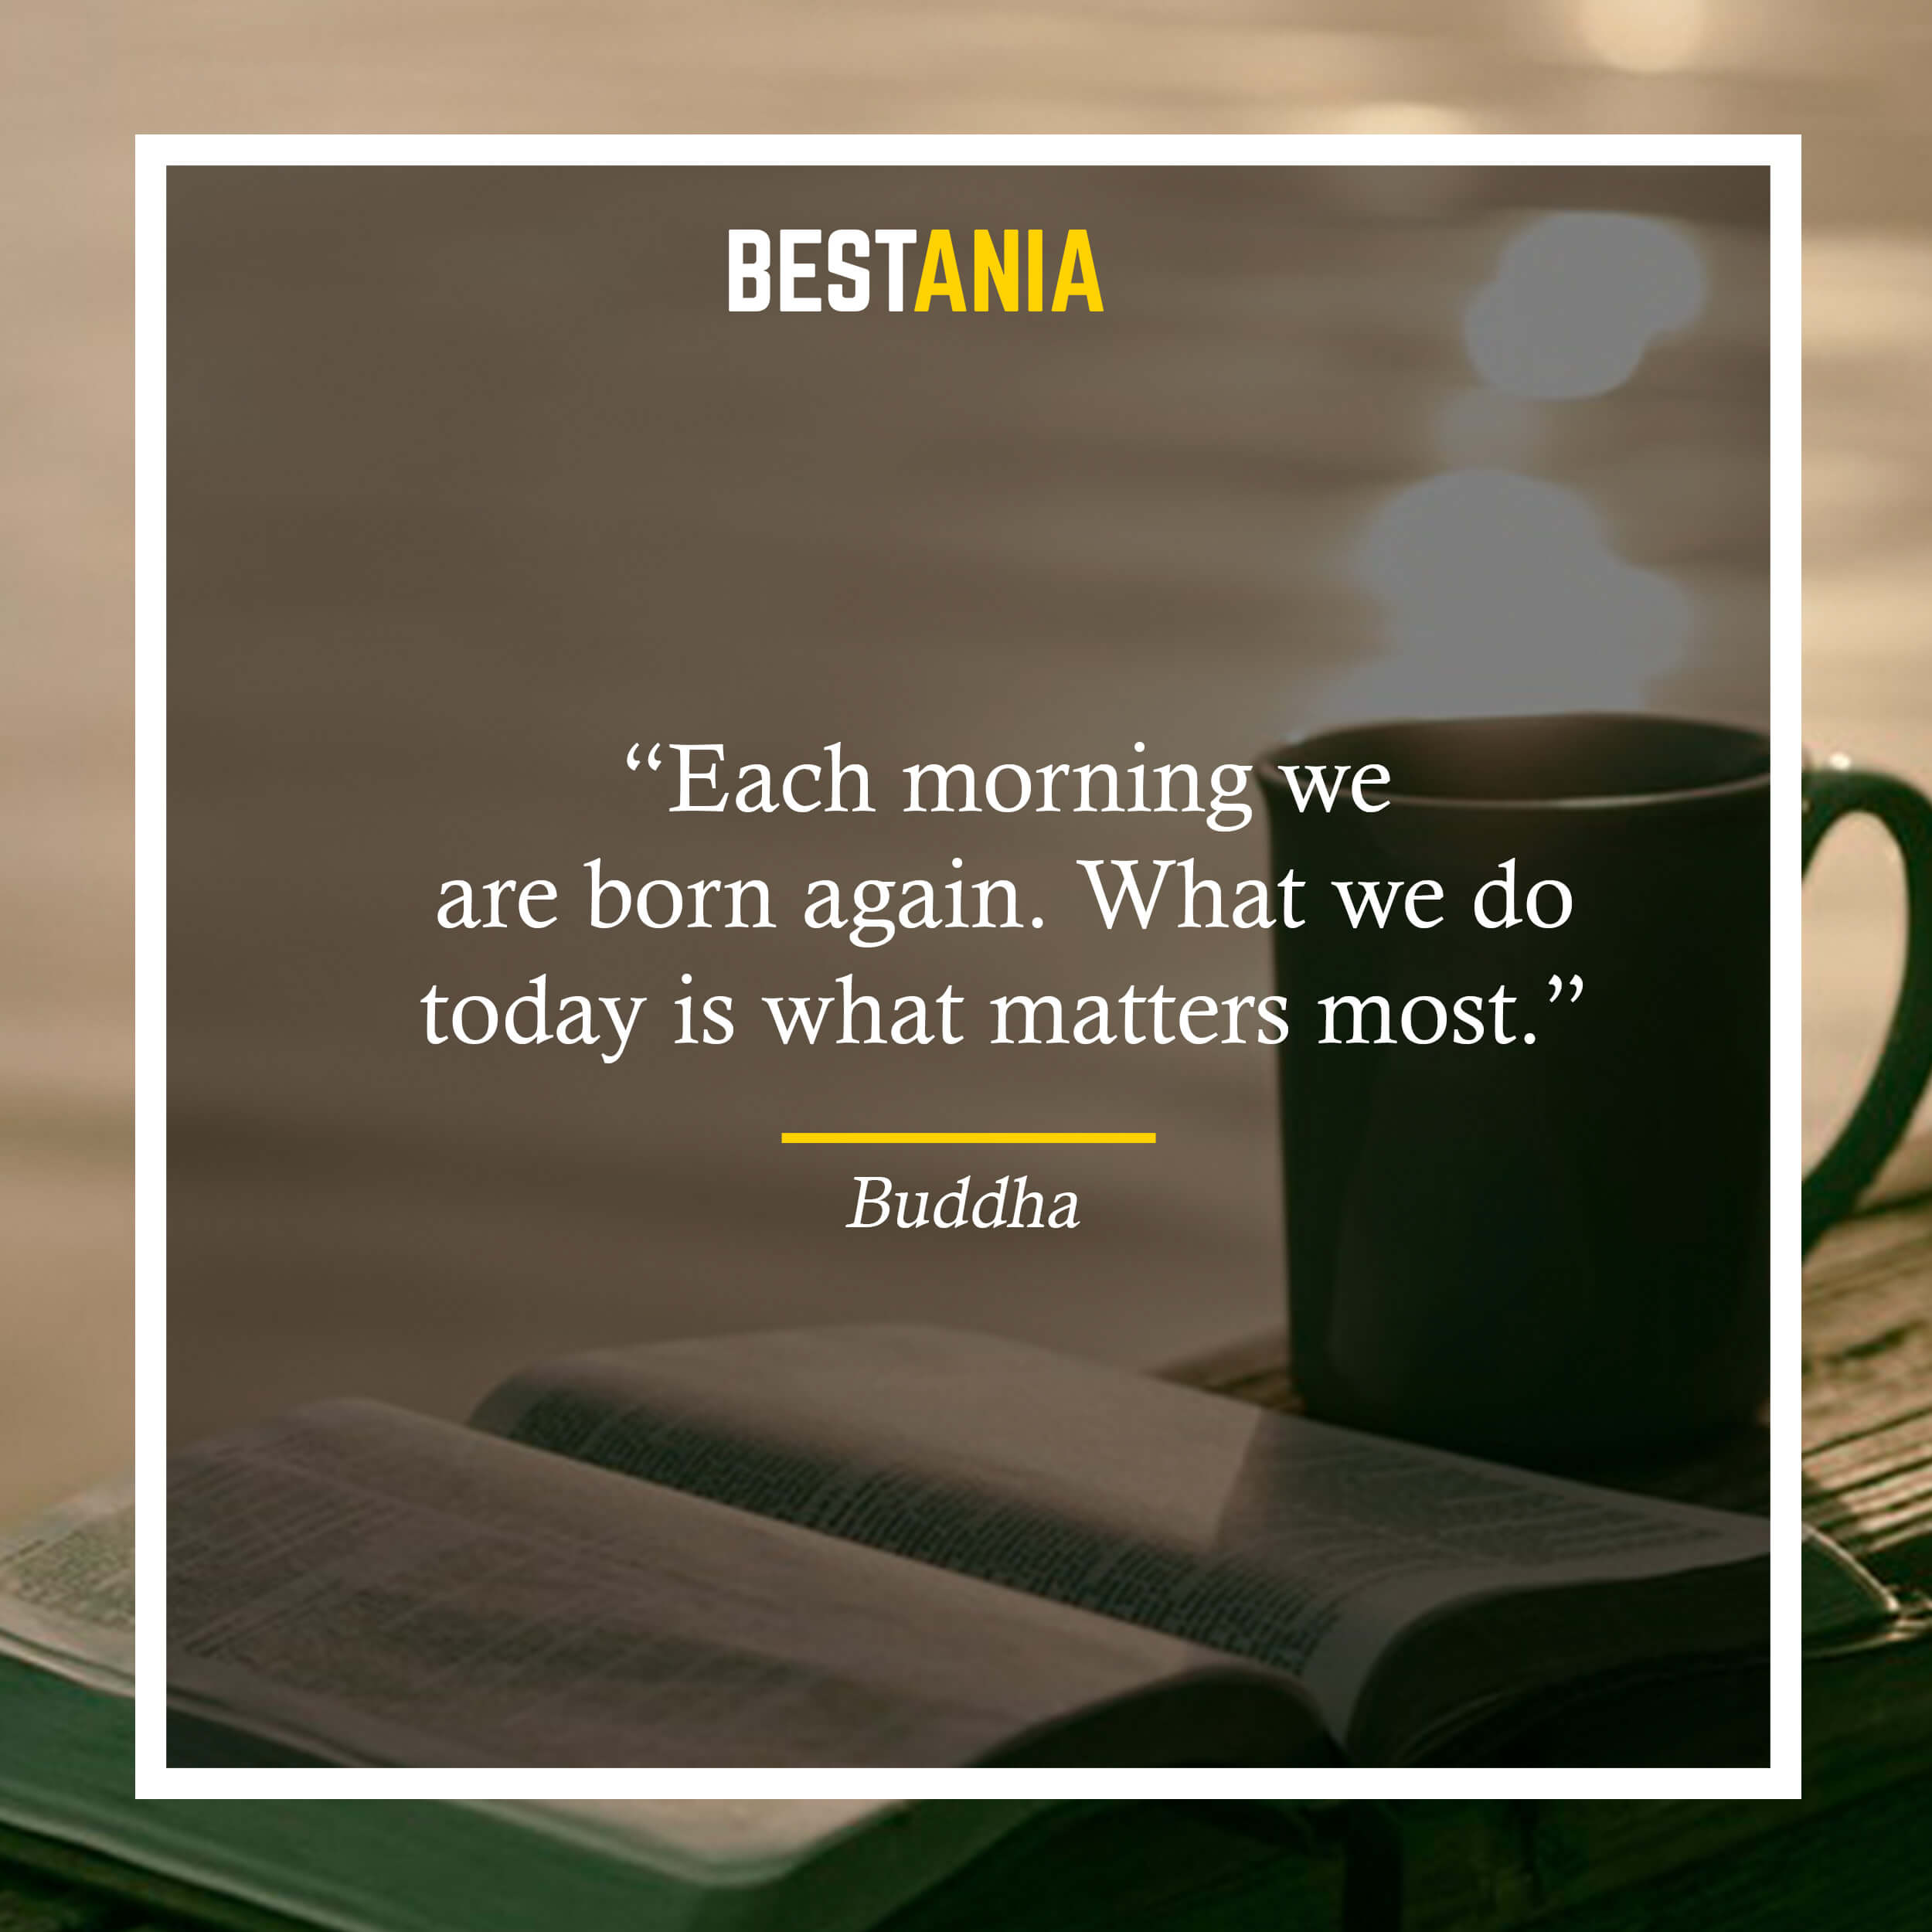 """Each morning we are born again. What we do today is what matters most."" – Buddha"